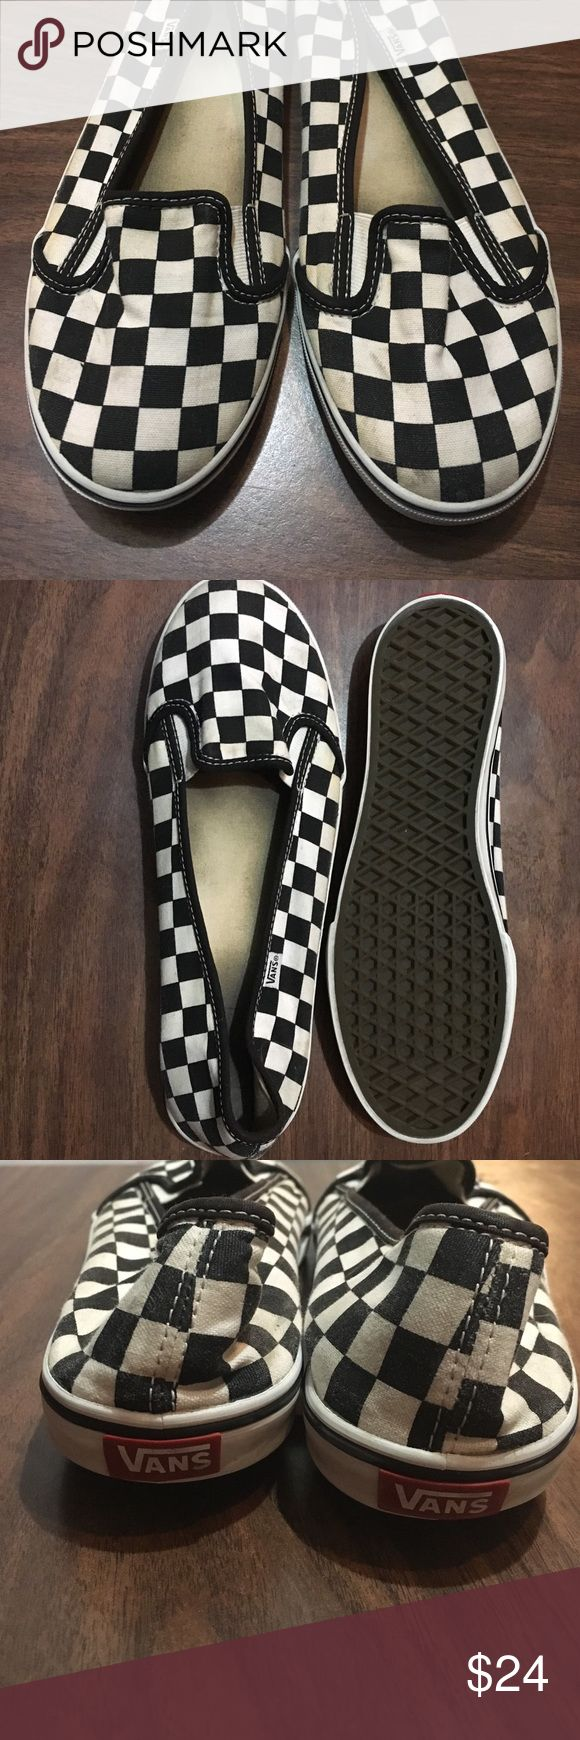 Vans Checkerboard Slip-On Flats Pair of Vans girly slip ons. Classic checkerboard pattern. Very clean on the outside, size 9! Vans Shoes Flats & Loafers